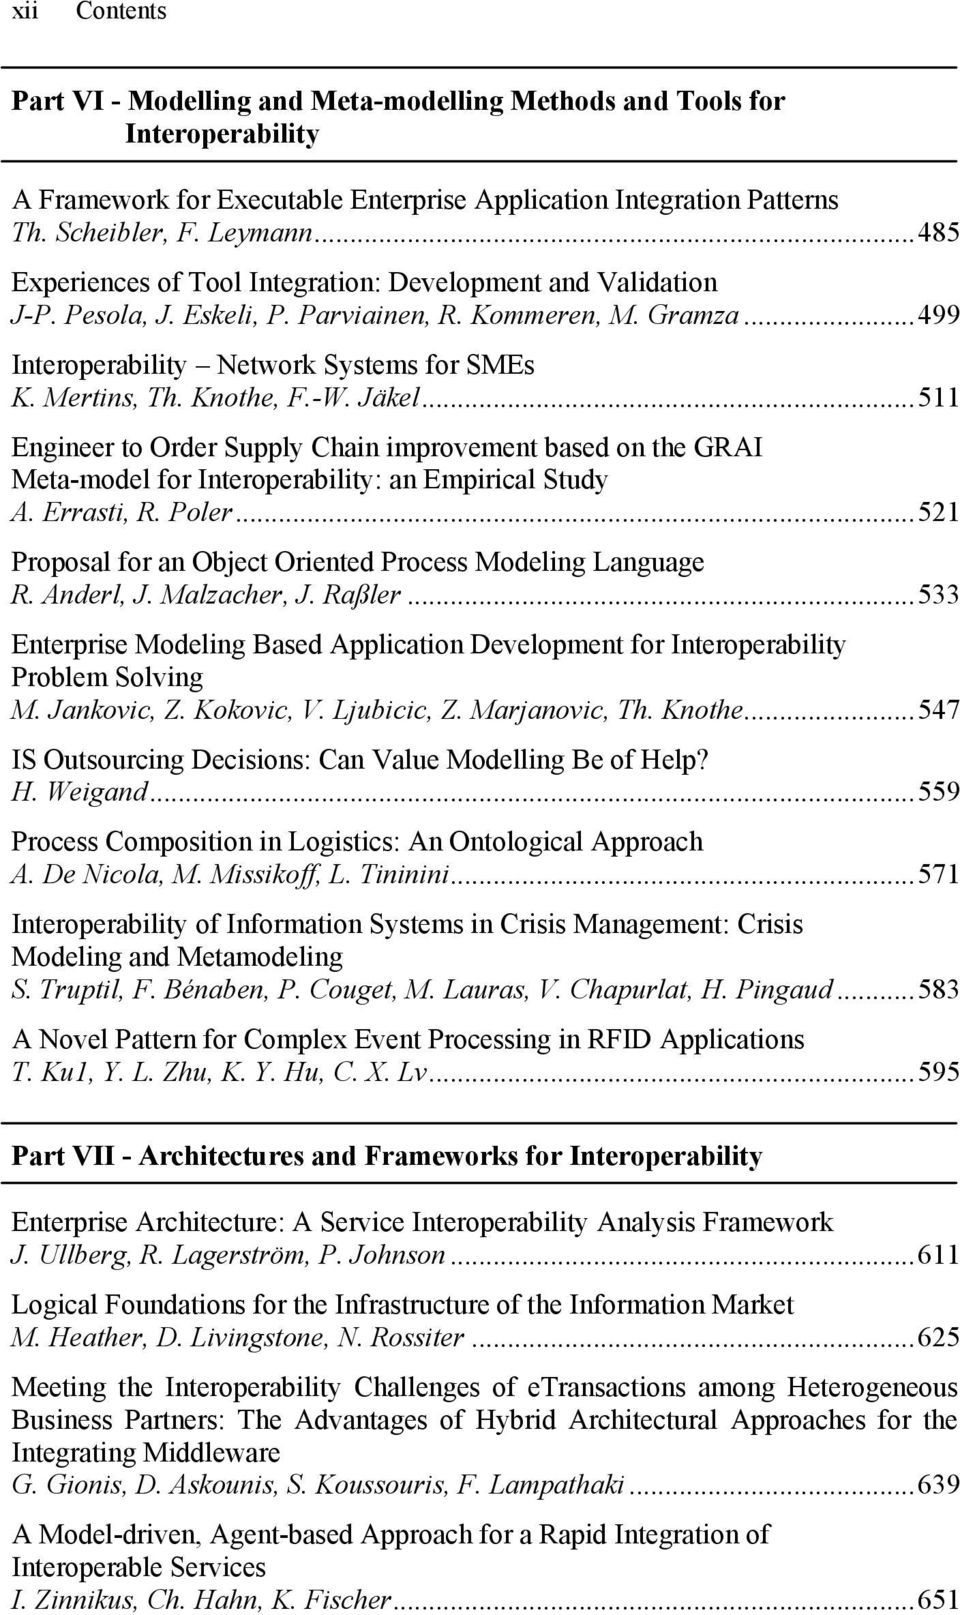 Knothe, F.-W. Jäkel...511 Engineer to Order Supply Chain improvement based on the GRAI Meta-model for Interoperability: an Empirical Study A. Errasti, R. Poler.